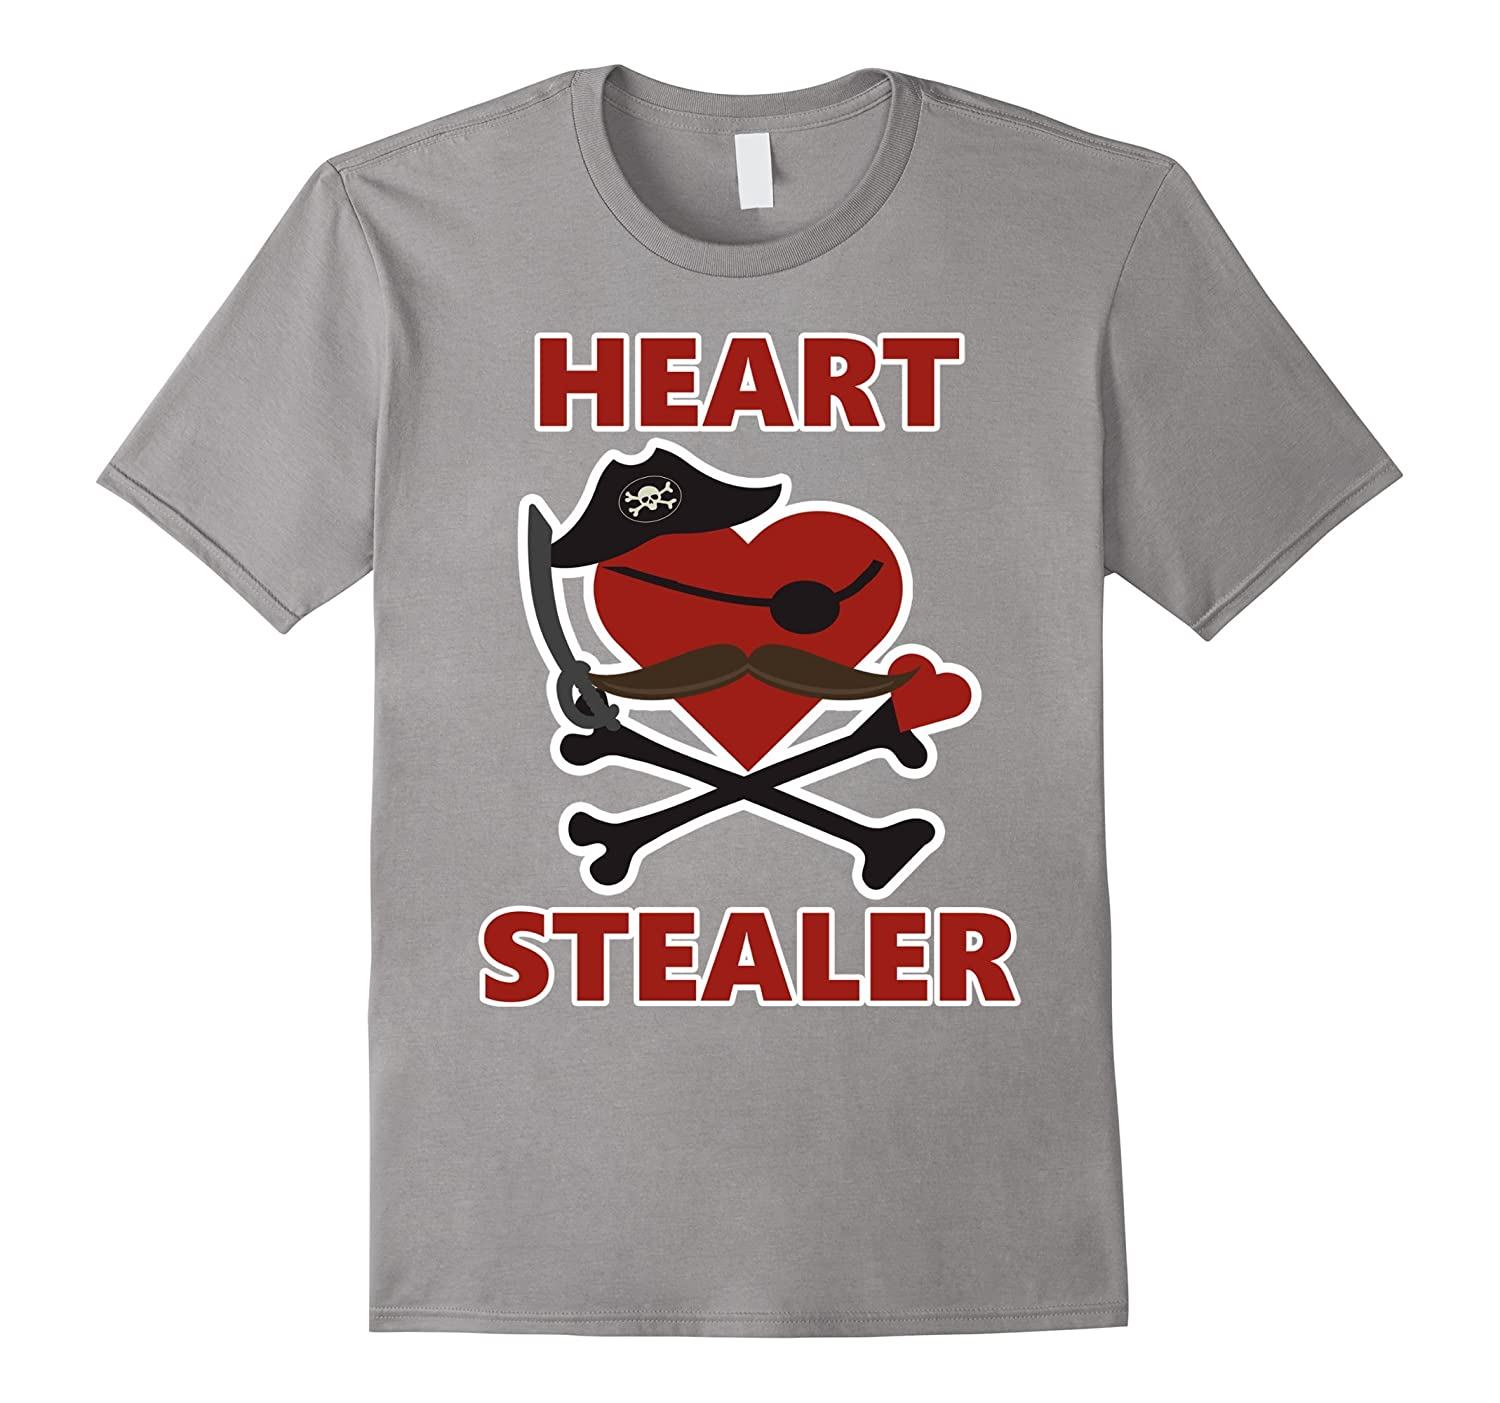 7bca42221b Cute HEART STEALER Toddler Boys Valentine Shirt for ALL AGES-CL ...